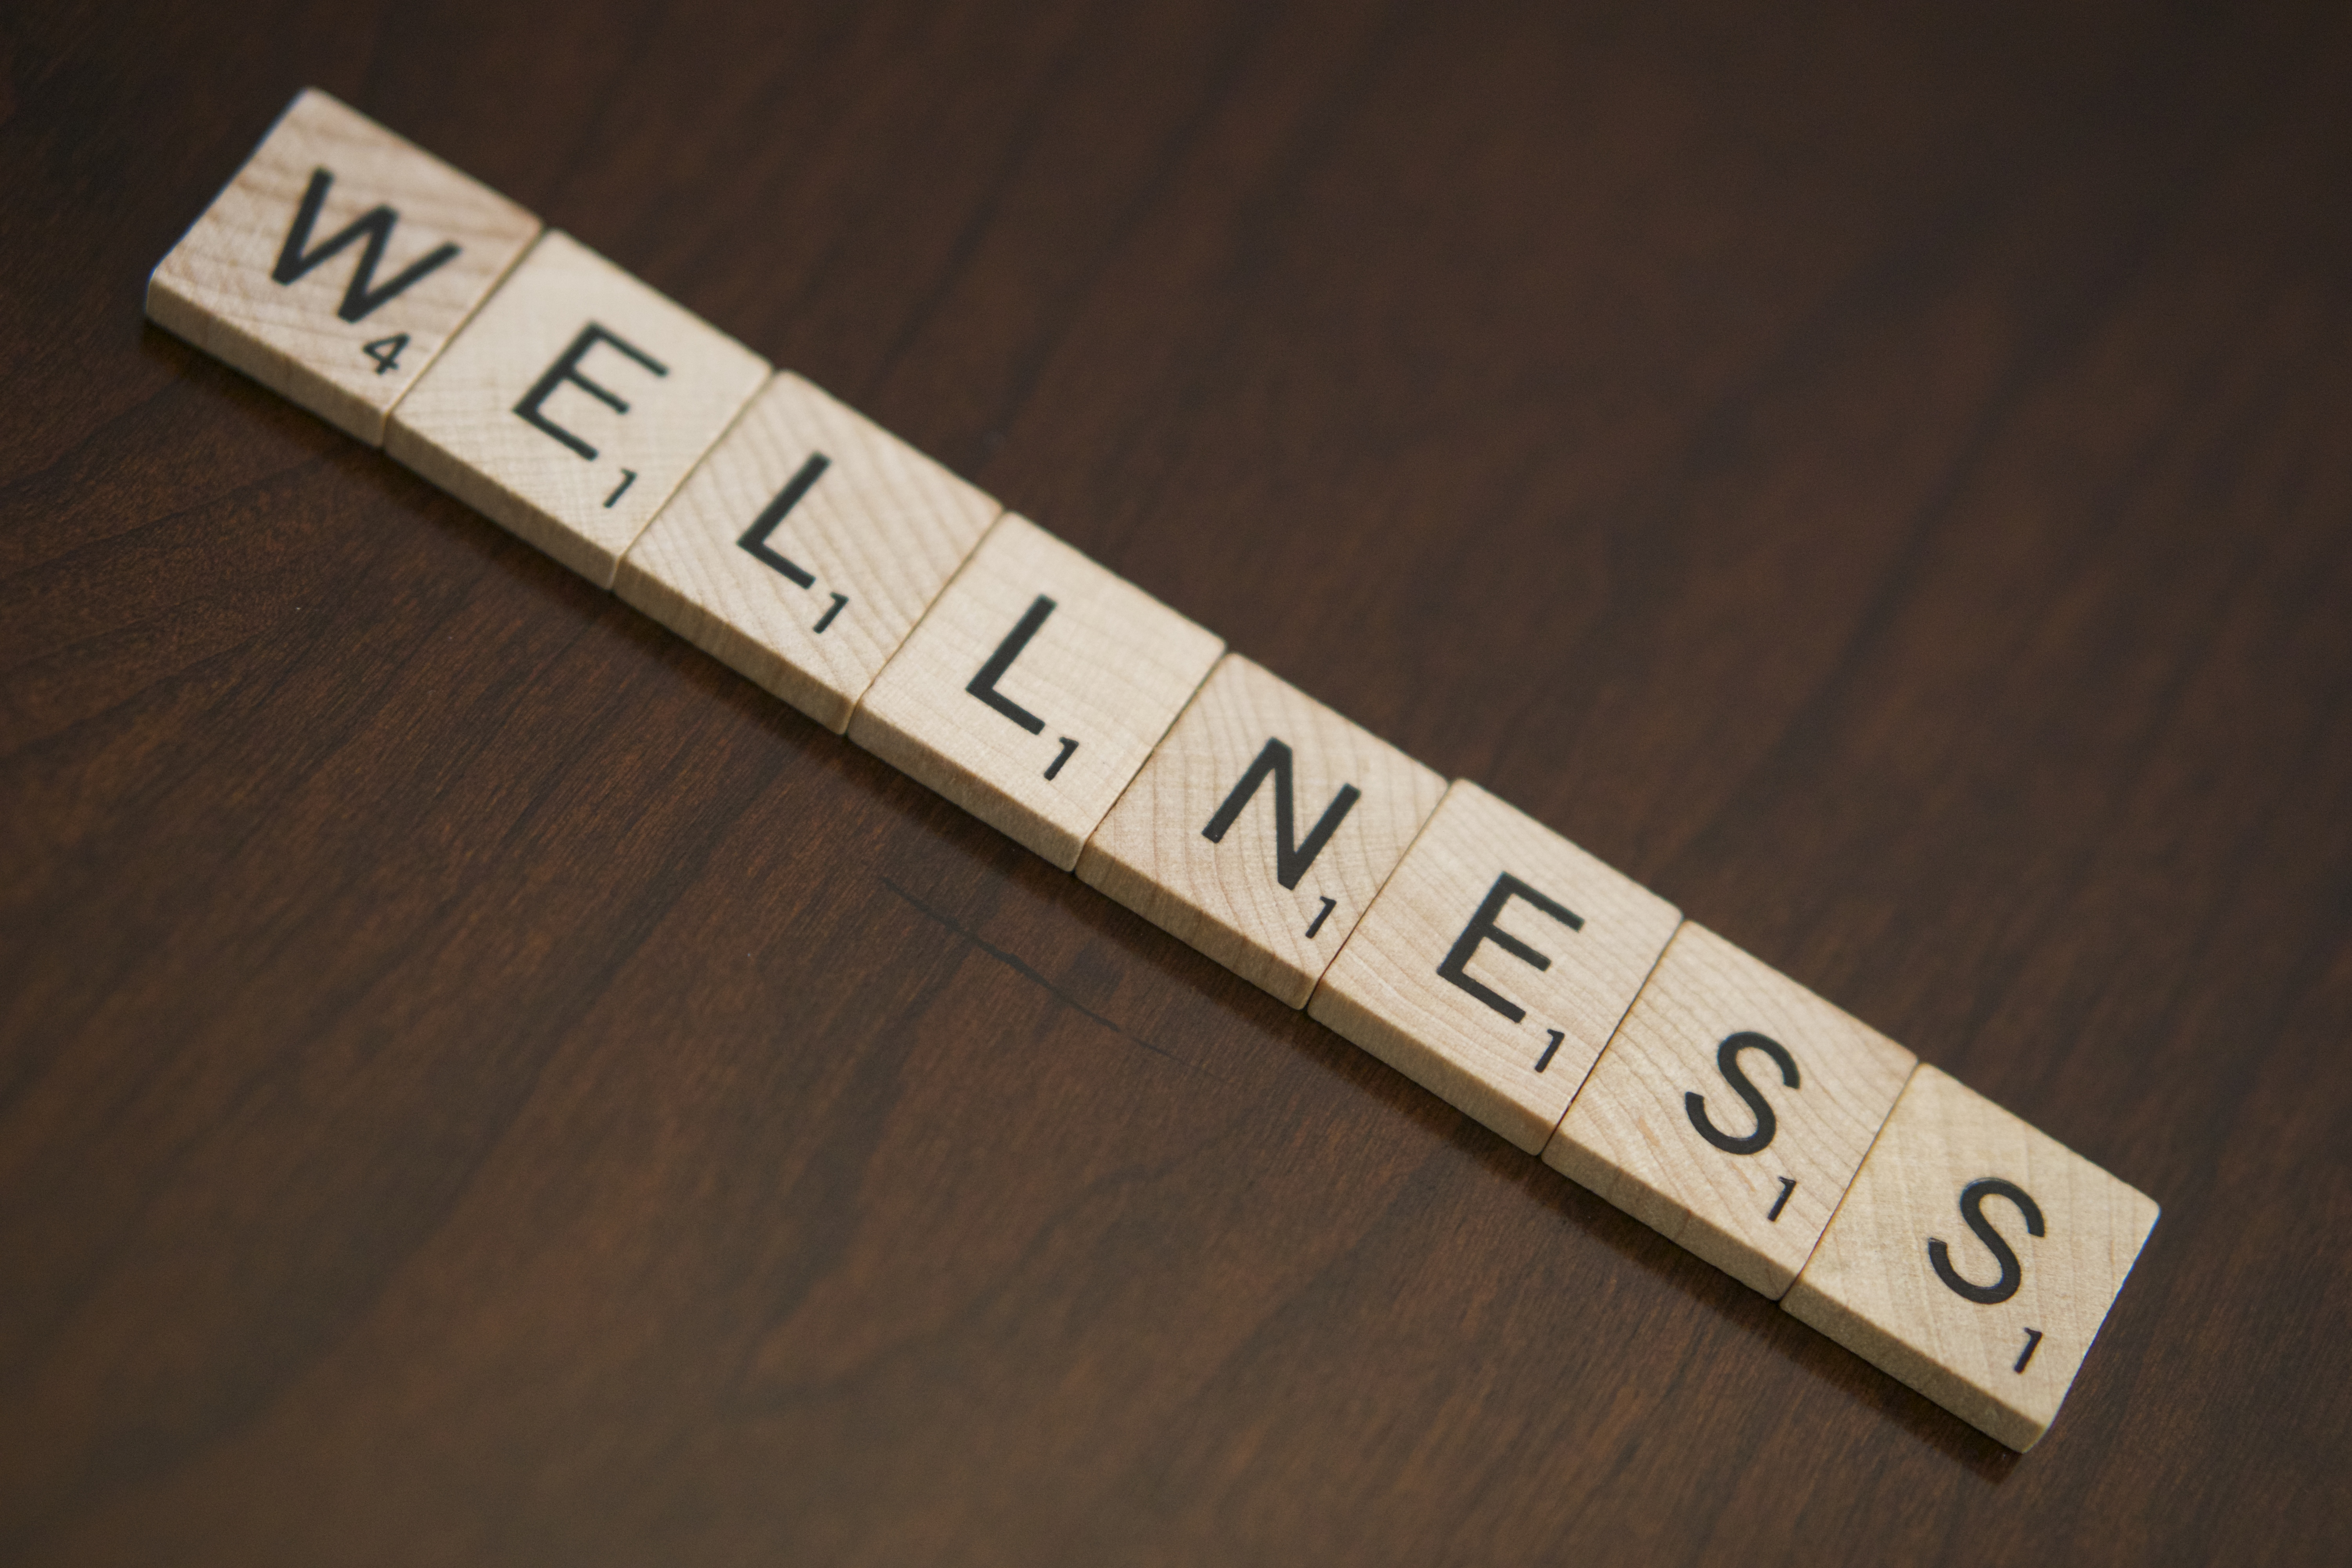 """""""Wellness"""" by Michael Havens is licensed under CC BY 2.0"""